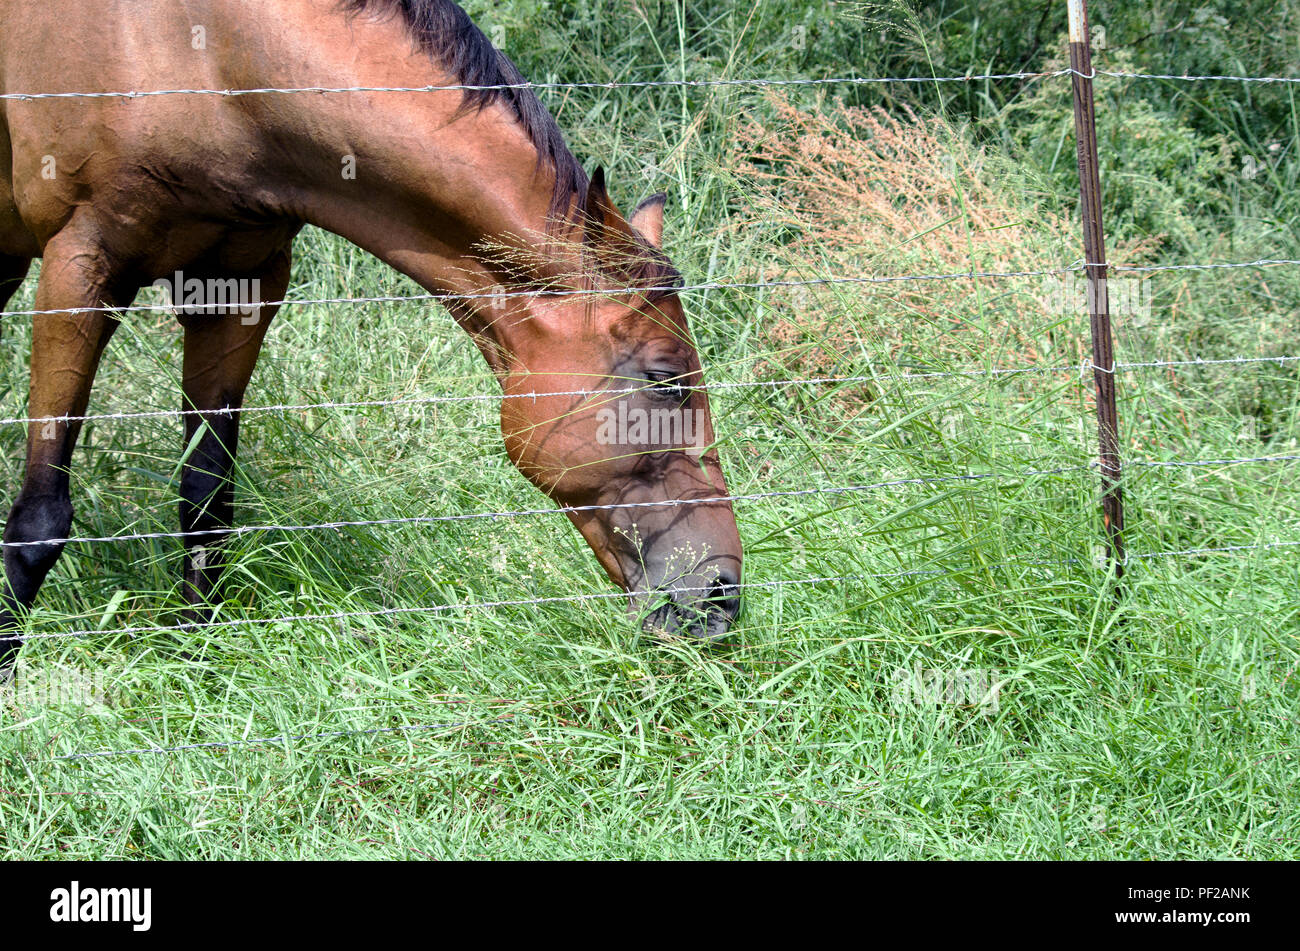 A Bay Horse grazes peacefully on Johnson grass inside barbed wire fencing. Photographed on an undeveloped lot in suburban Corpus Christi, Texas USA. - Stock Image